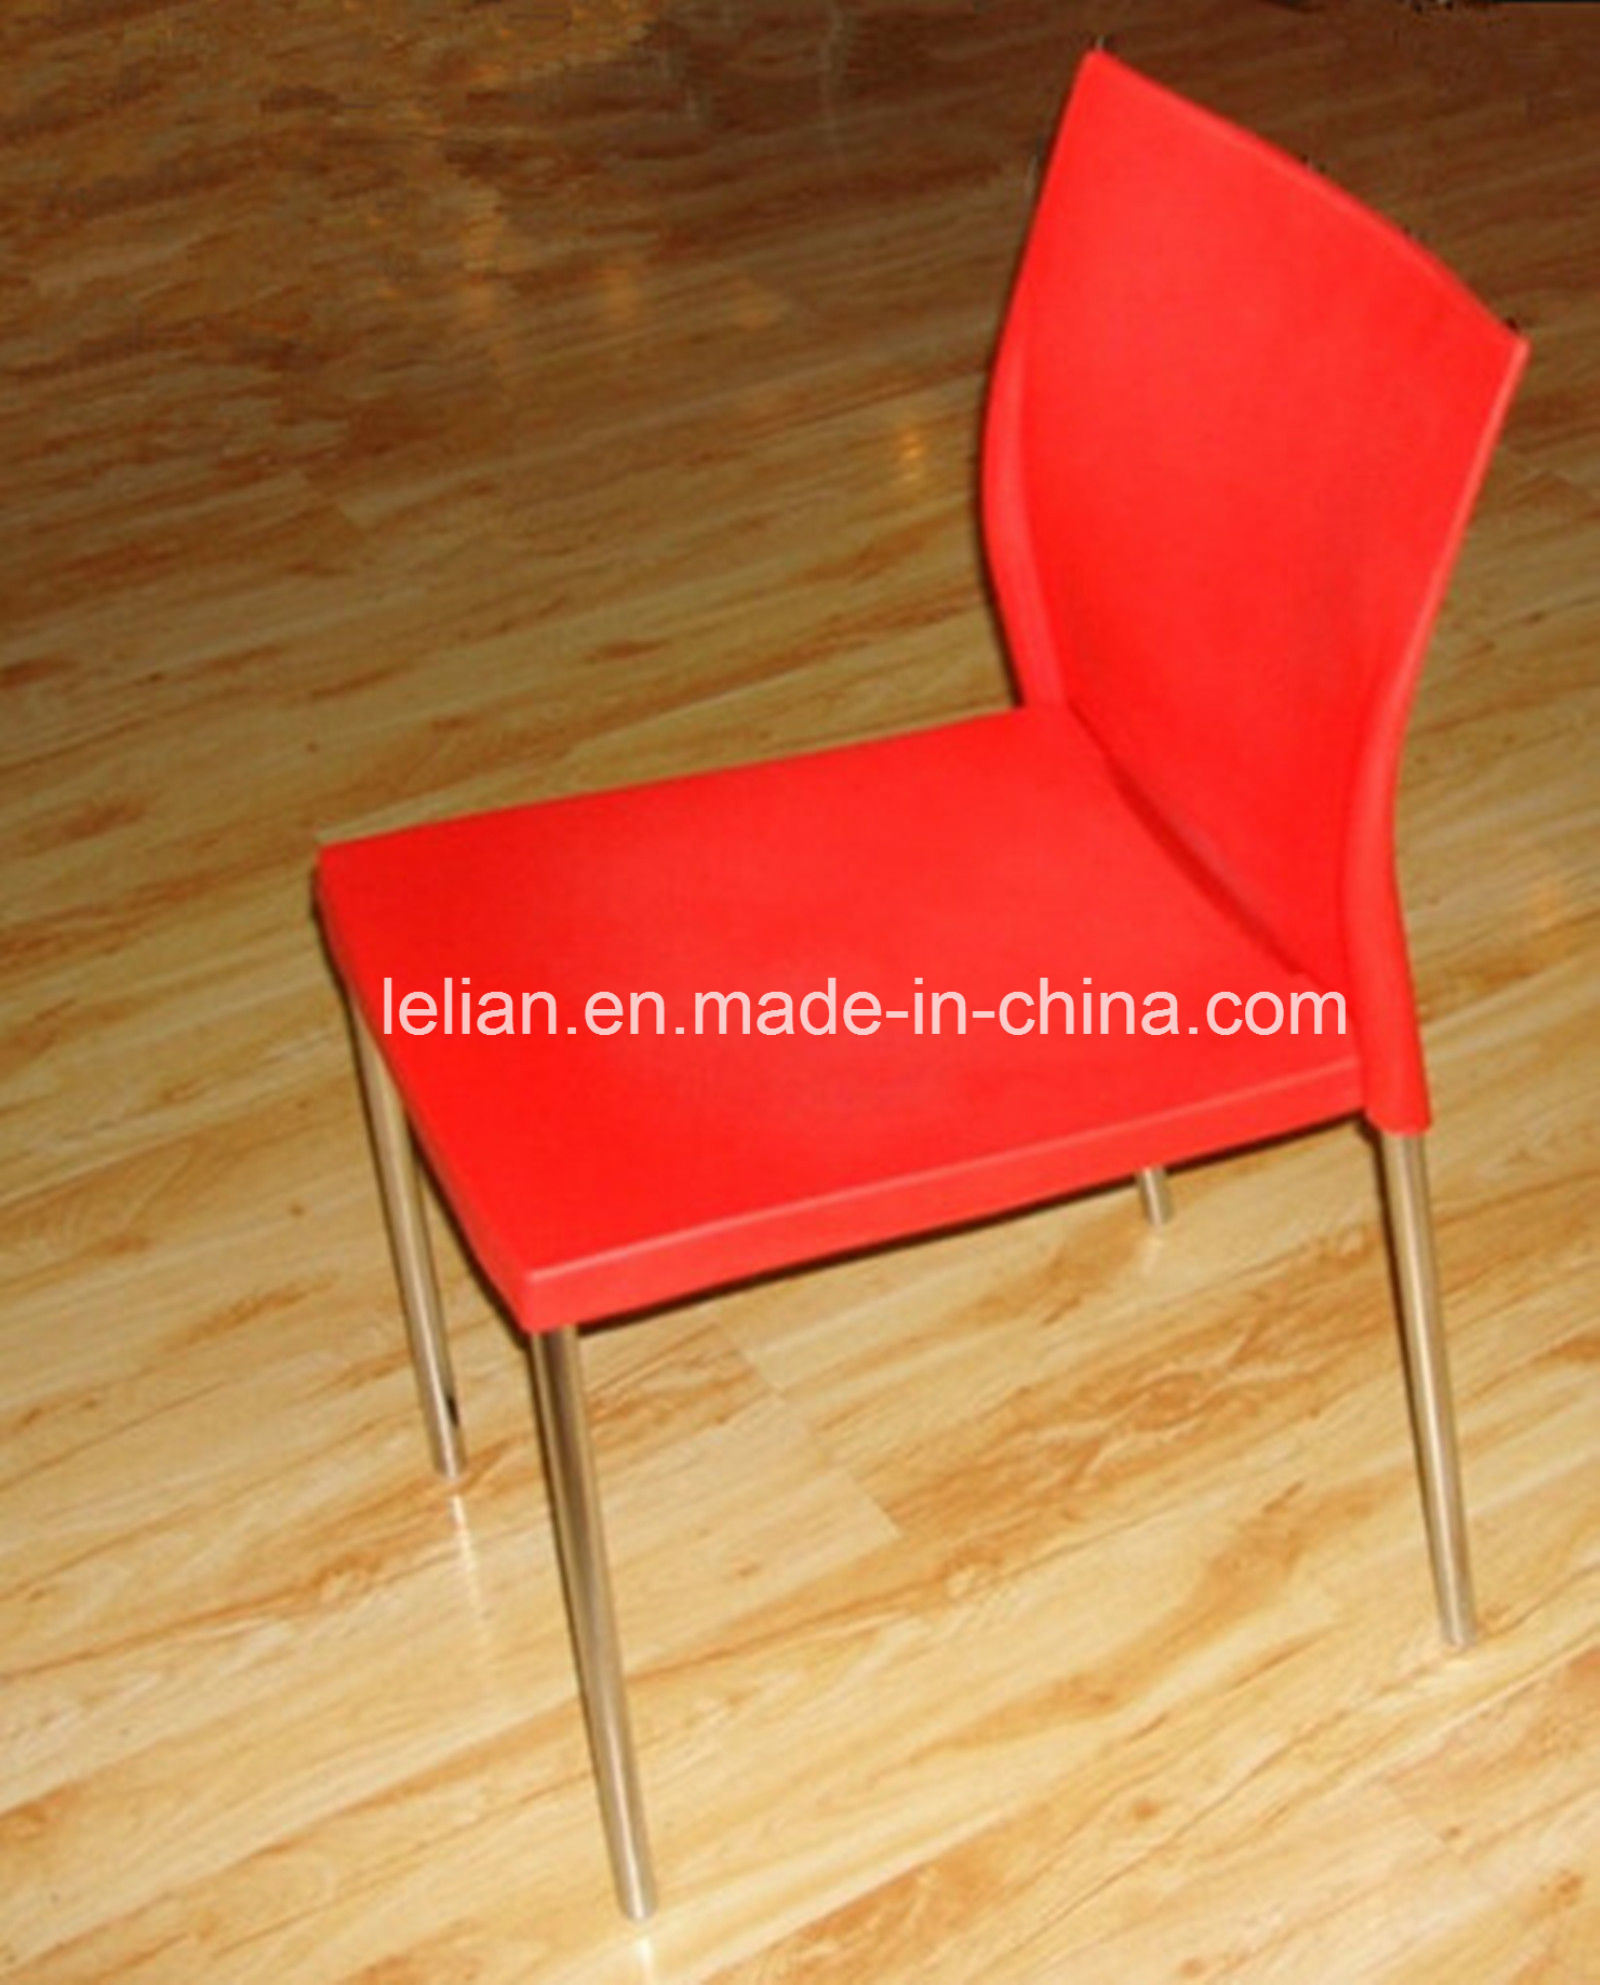 Bistro Escalate Chair with Plastic Back and Seat for Dining Furniture (LL-0010) pictures & photos